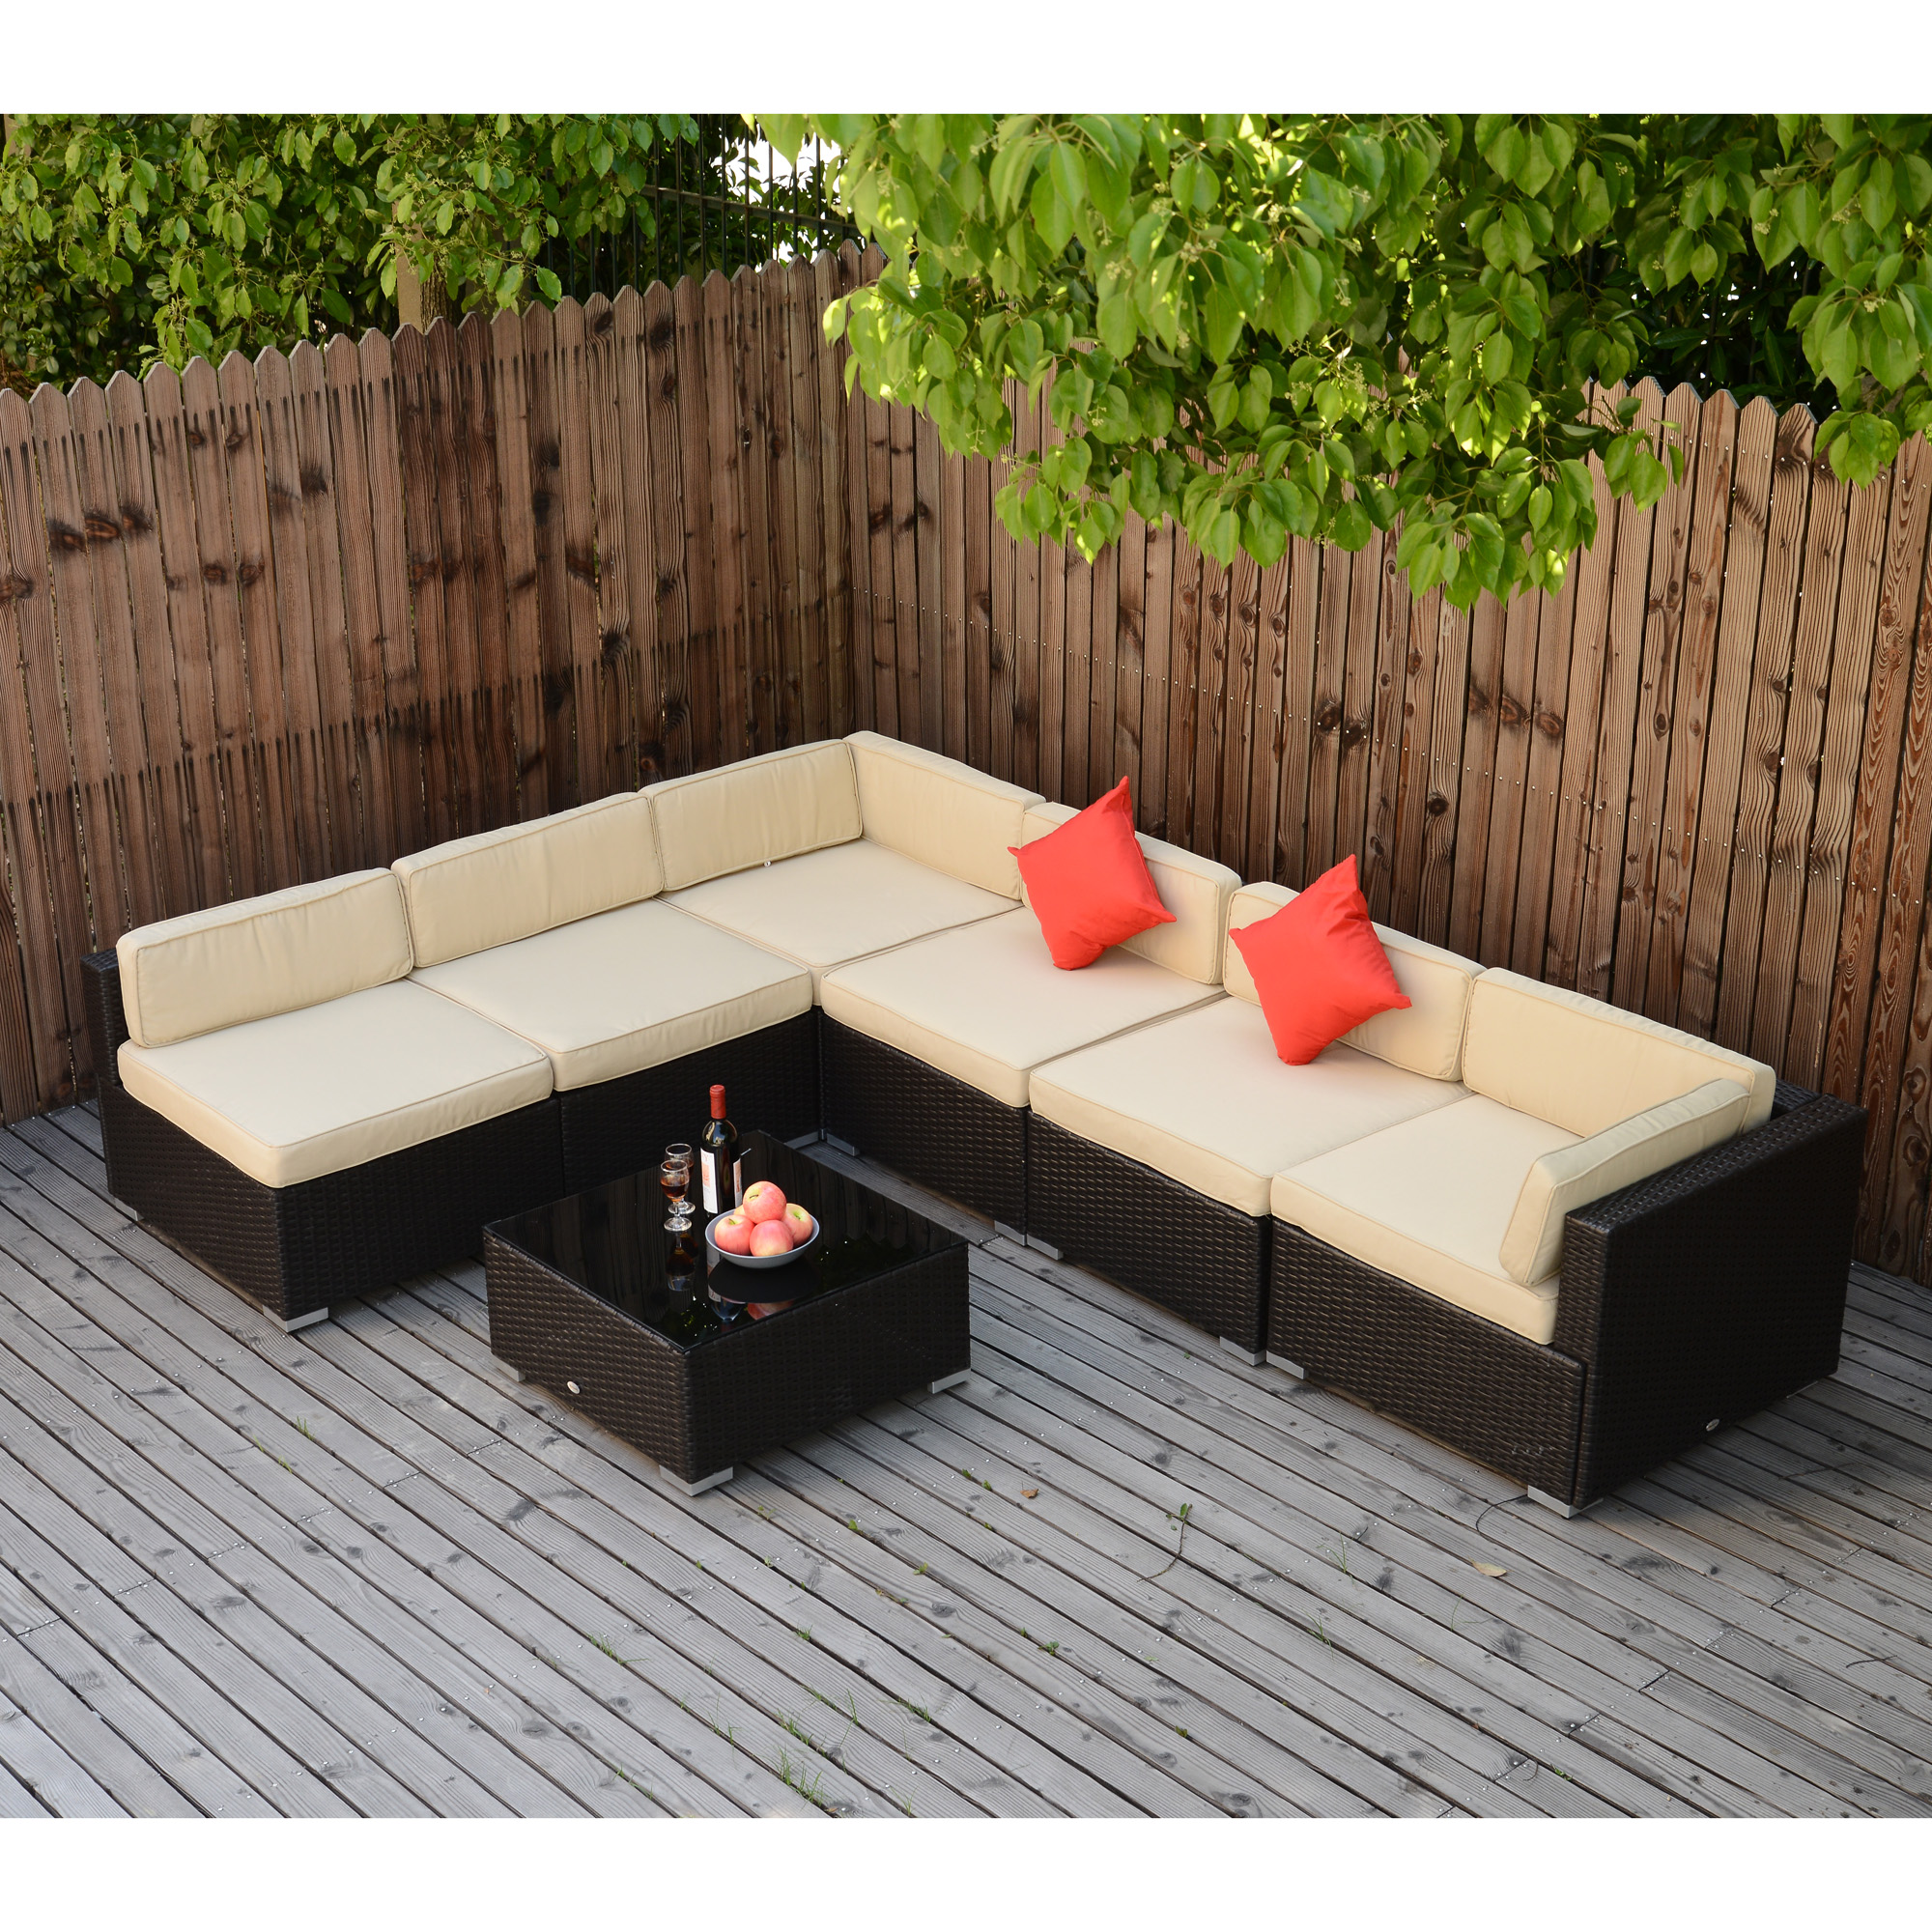 Stupendous Details About 7Pc Wicker Sofa Set Rattan Patio Furniture Table Chairs Cushioned Outdoor Patio Andrewgaddart Wooden Chair Designs For Living Room Andrewgaddartcom